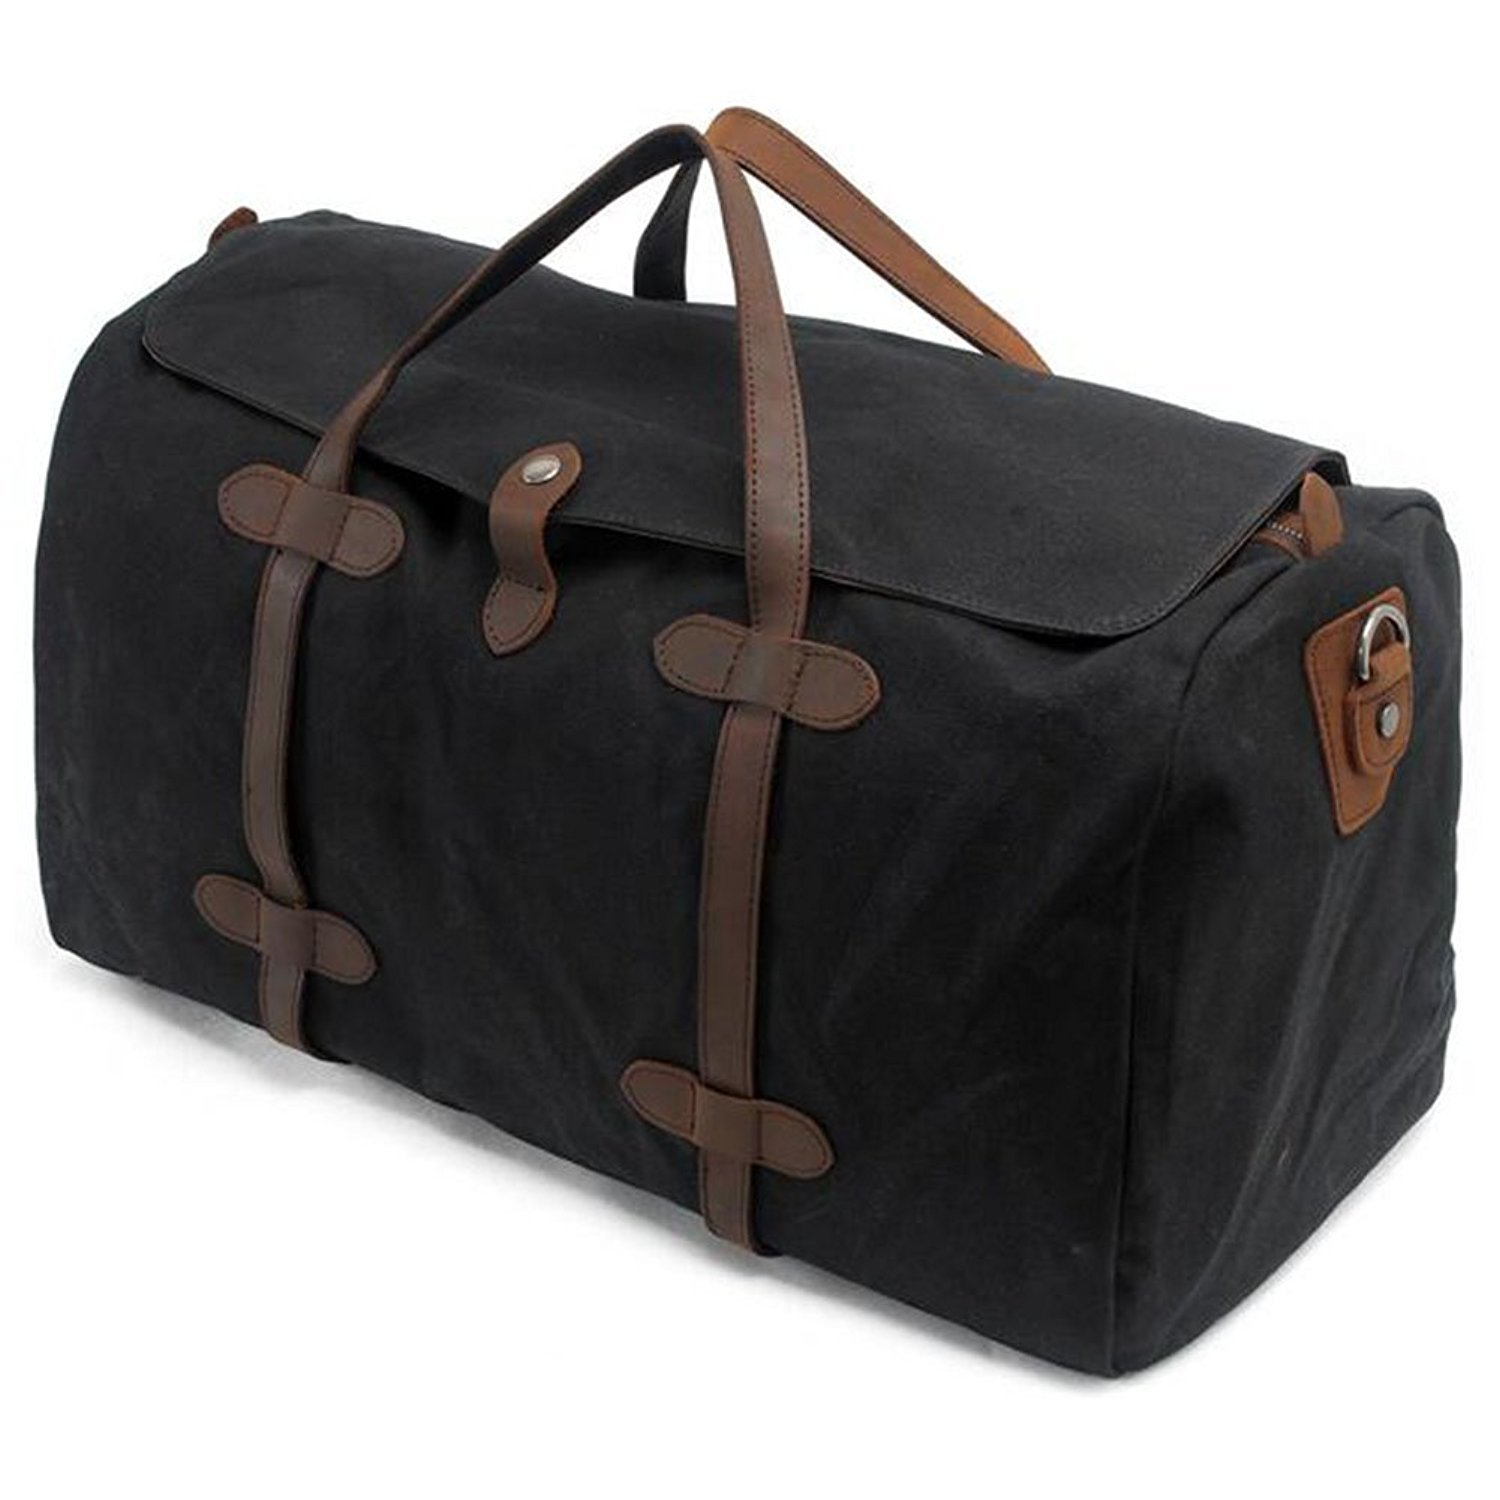 a59a48d996e Amazon.com   S-ZONE Waterproof Waxed Canvas Leather Trim Travel Tote Duffel  Handbag Weekend Bag   Gym Totes